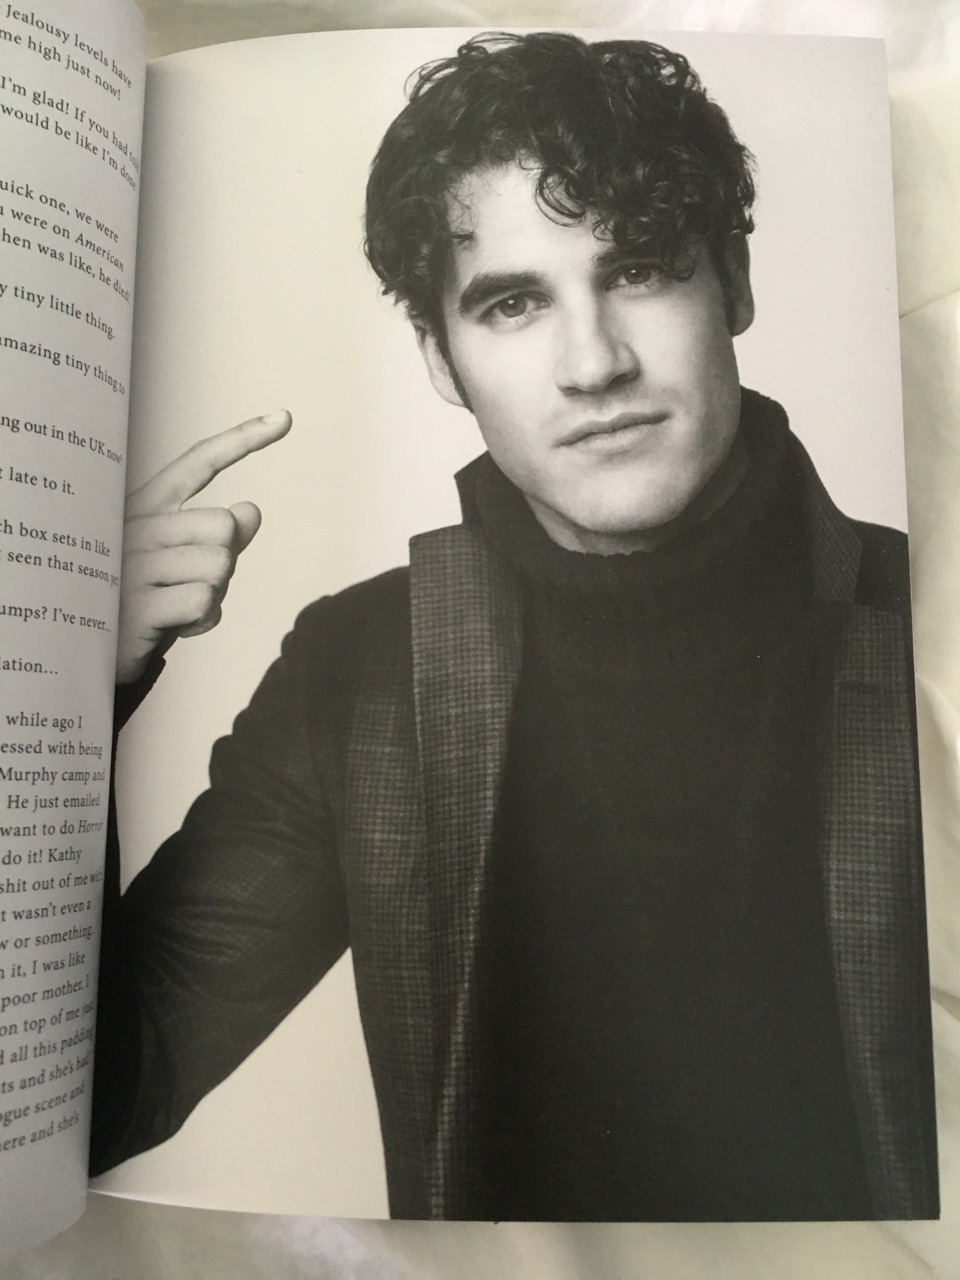 darrencriss - Photos/Gifs of Darren in 2016 - Page 2 Tumblr_odlsakSzvZ1r9lj61o4_1280